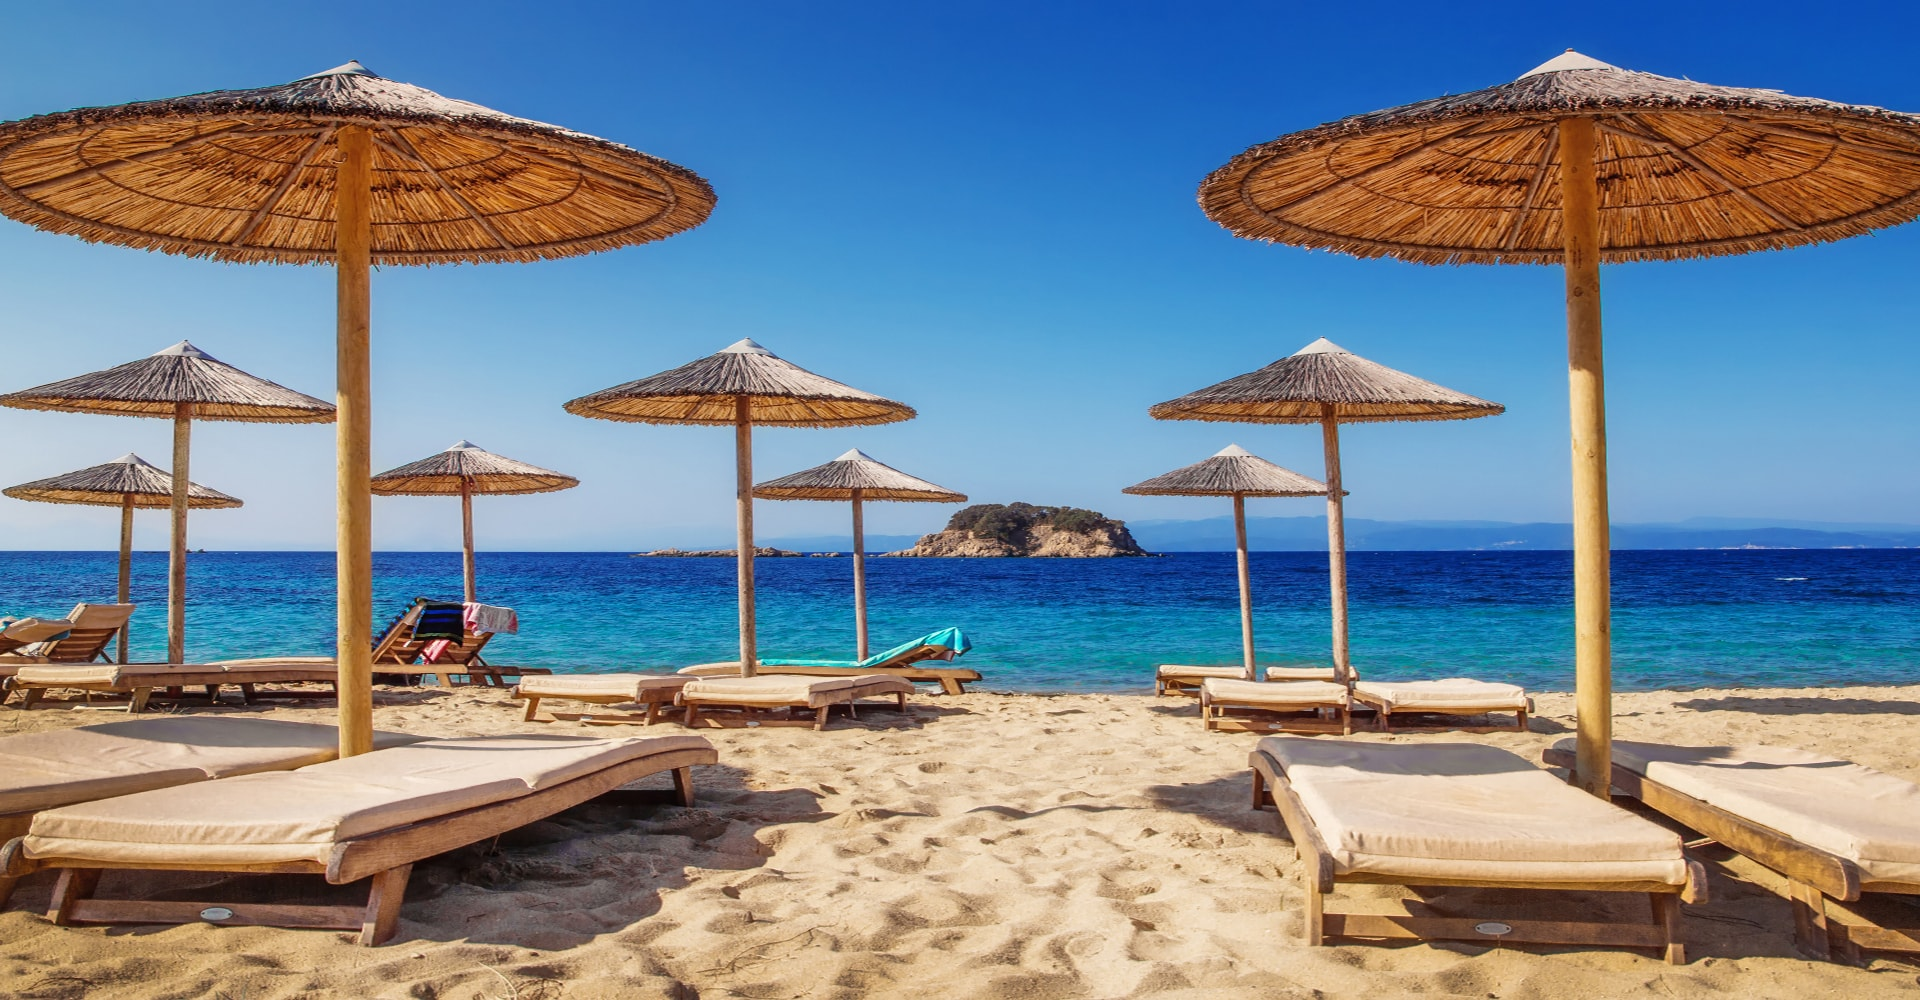 LOW COST TRAVEL TO SKIATHOS